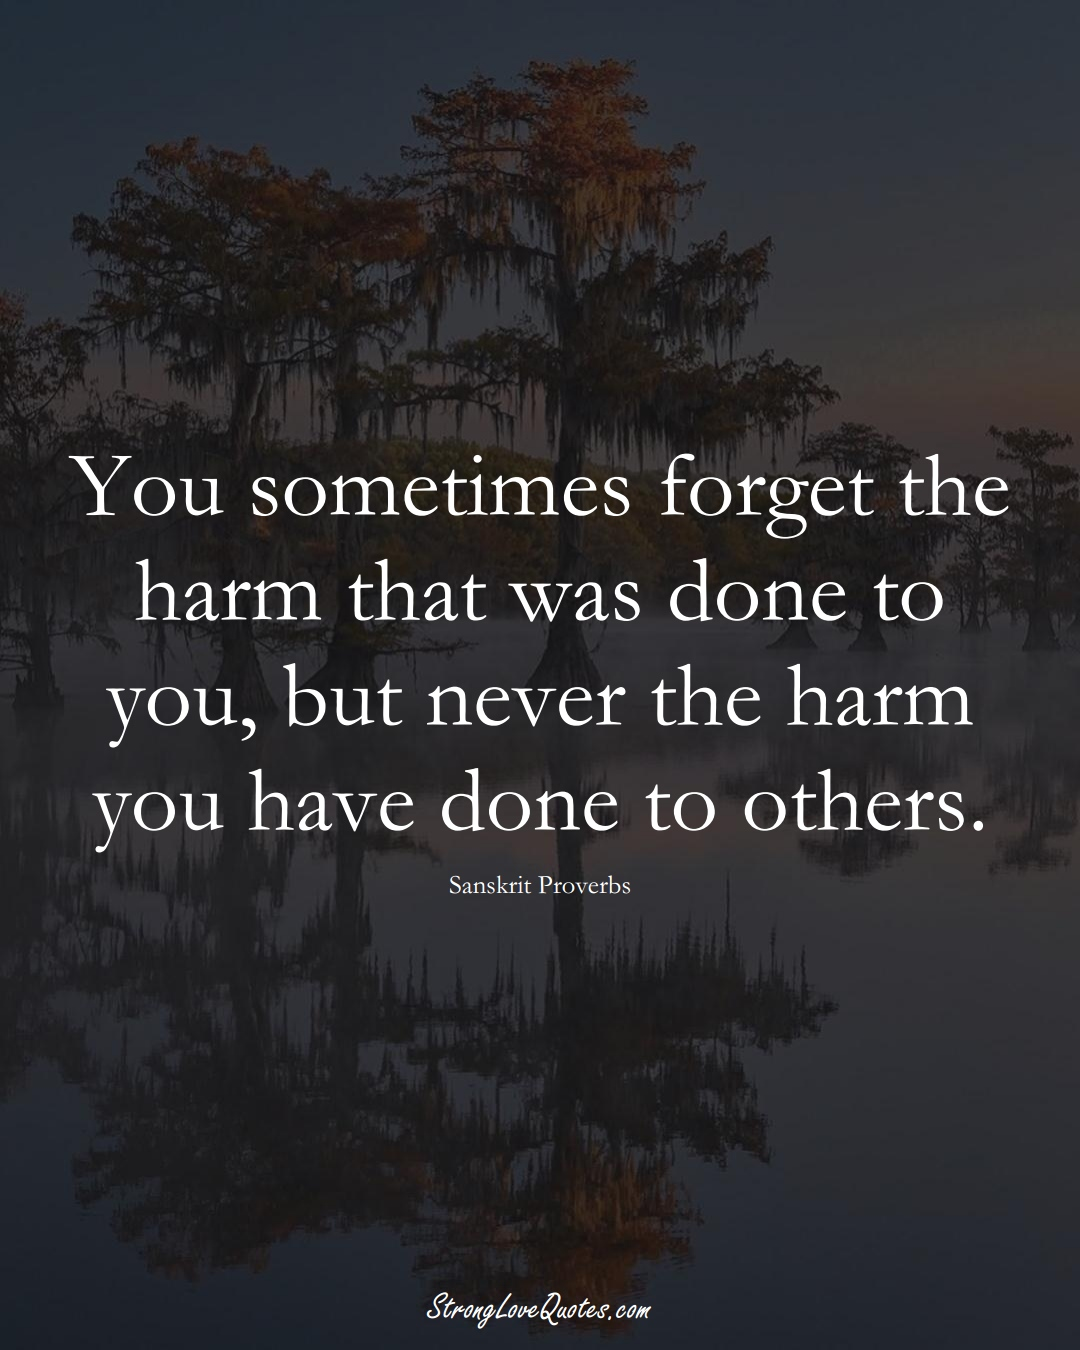 You sometimes forget the harm that was done to you, but never the harm you have done to others. (Sanskrit Sayings);  #aVarietyofCulturesSayings